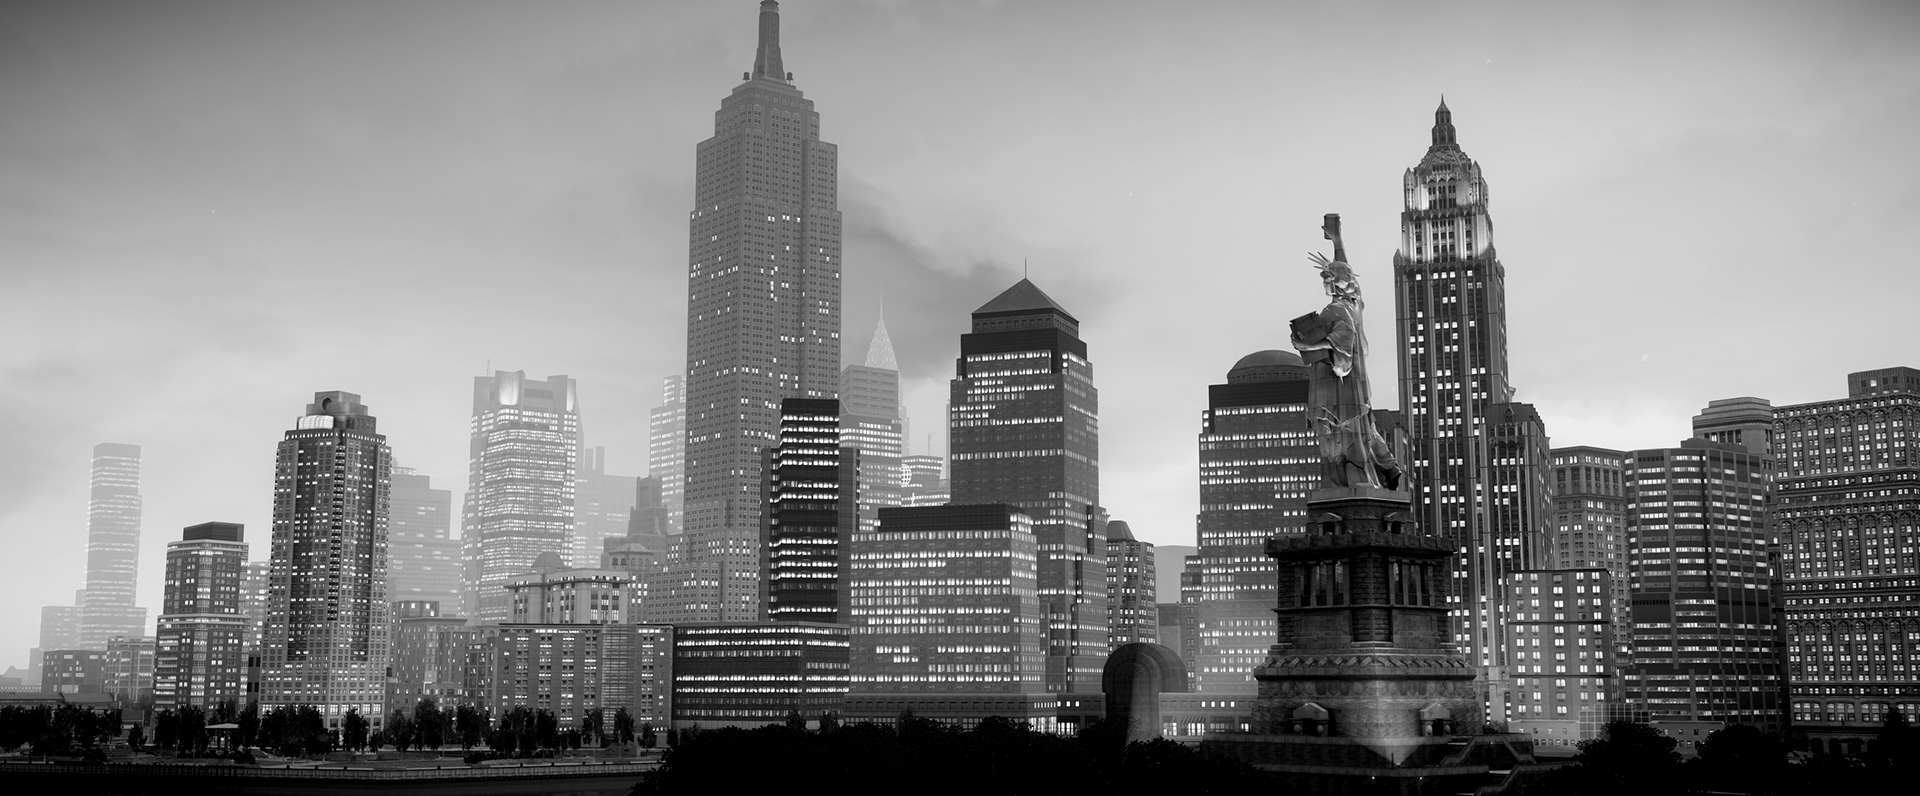 See Grand Theft Auto 4's Liberty City in brilliant black and white